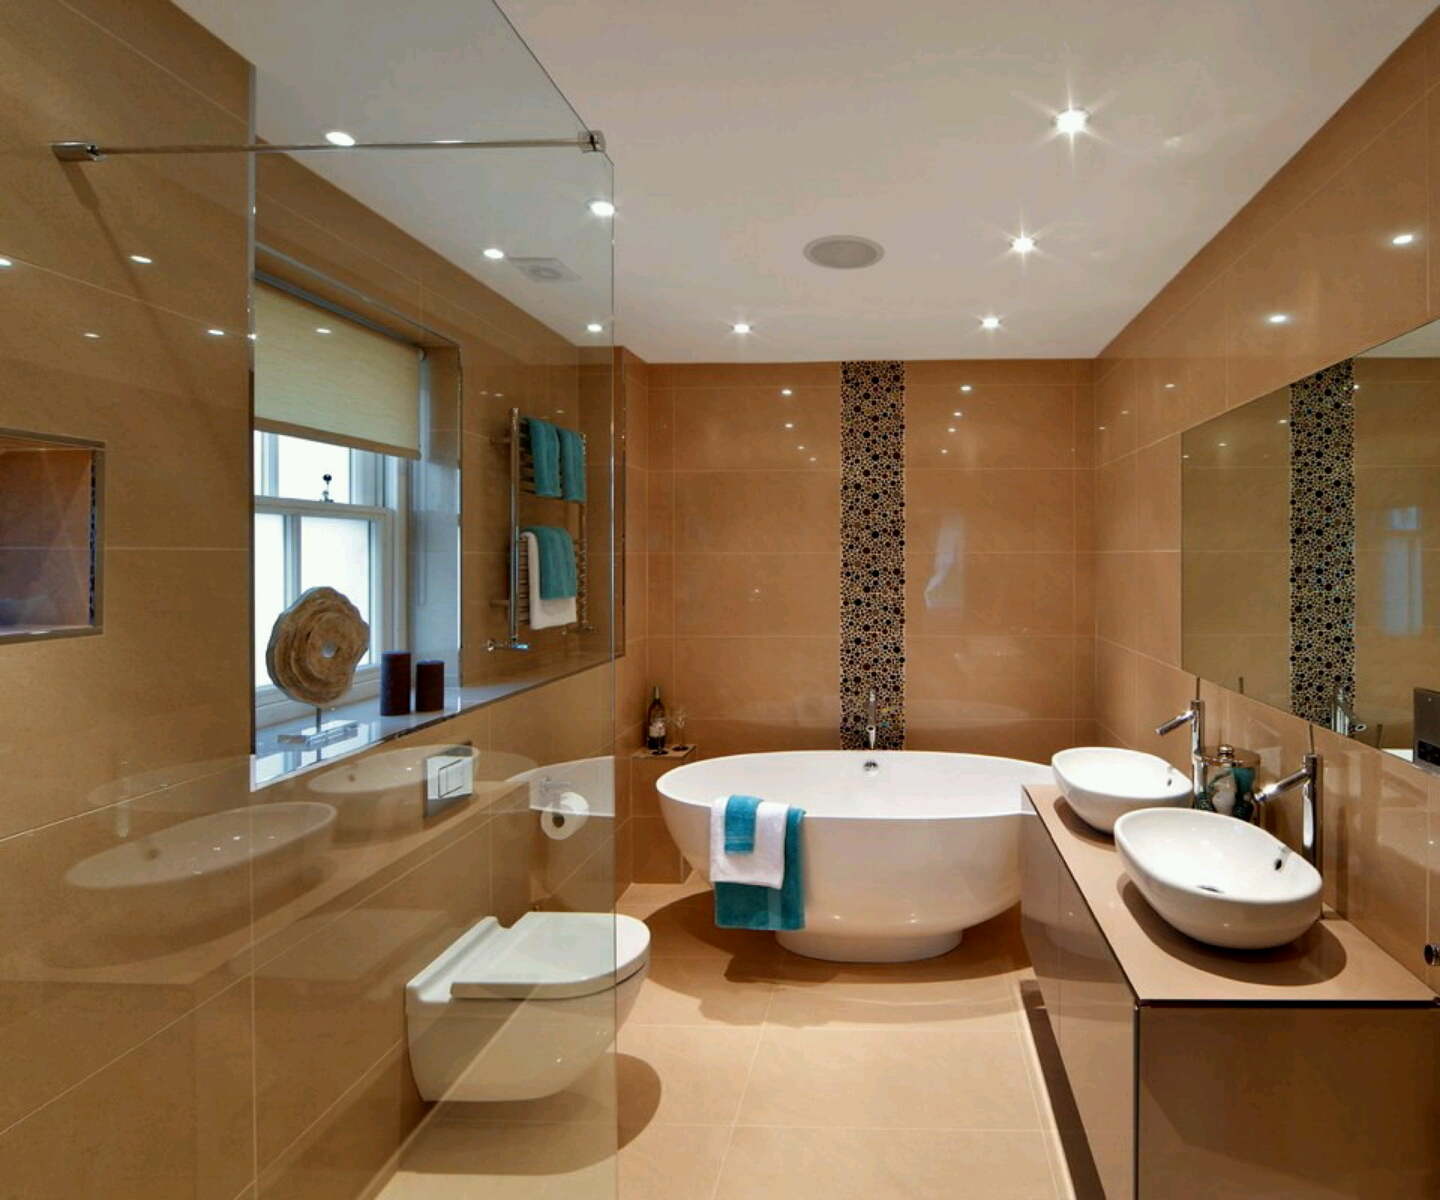 25 small but luxury bathroom design ideas How to design a modern bathroom